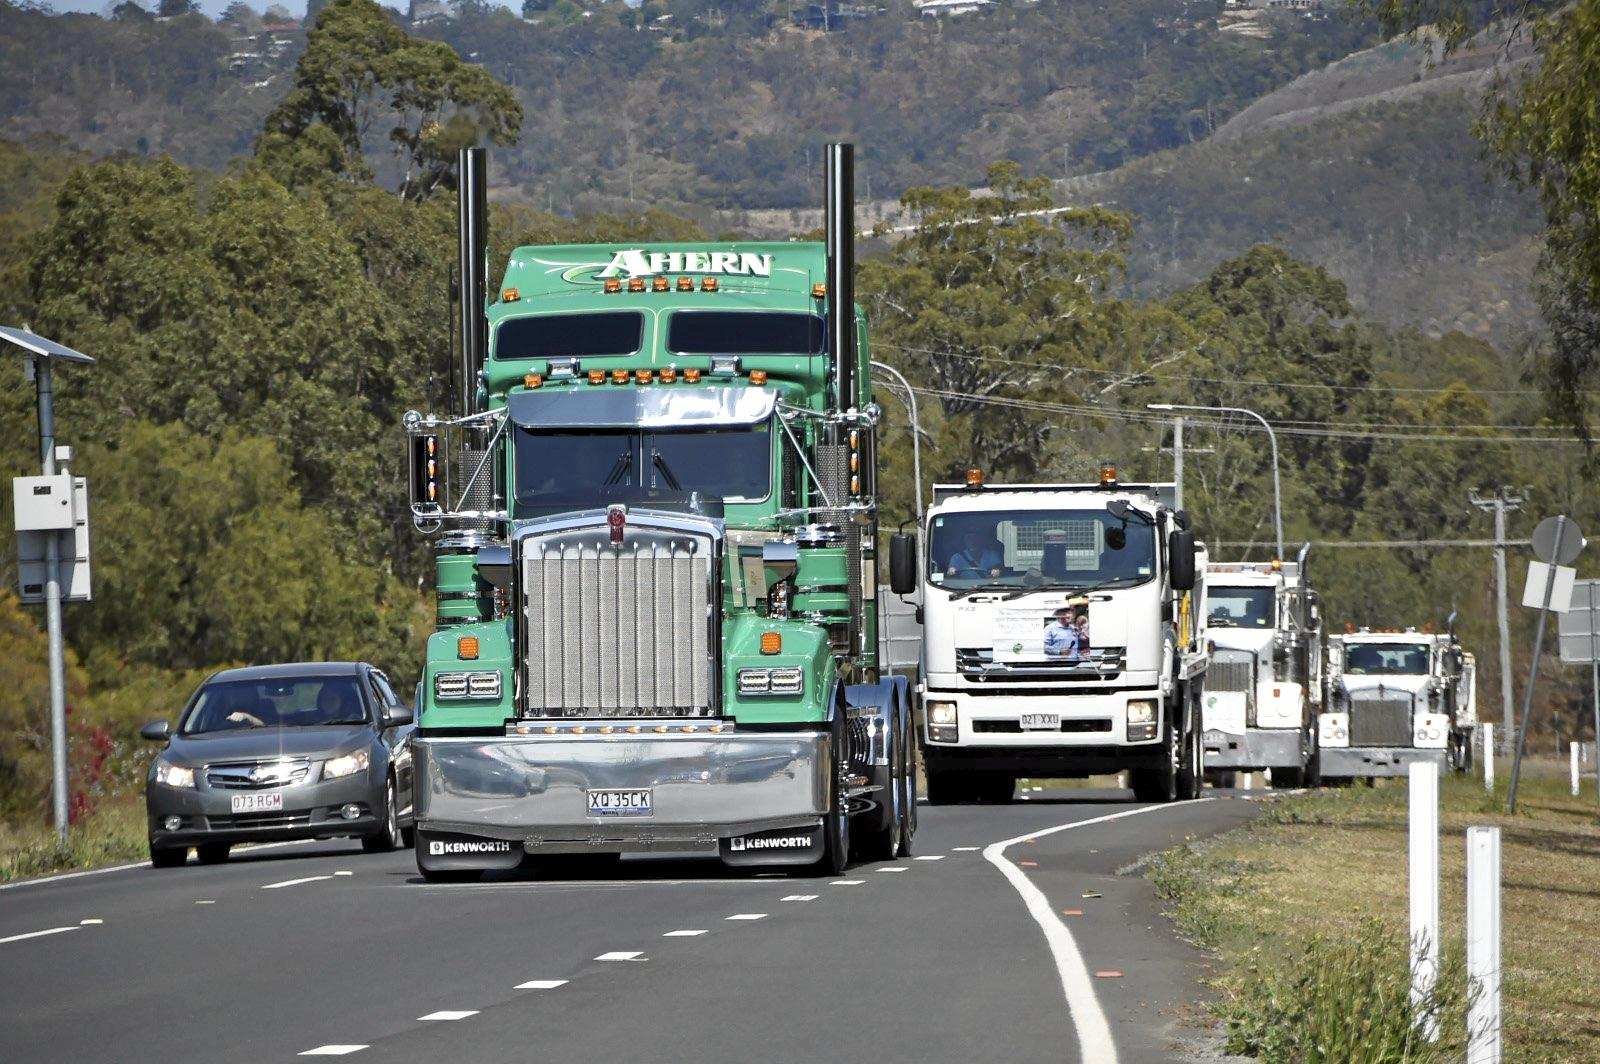 Convoy of trucks leave from Withcott for the annual Lights on the Hill memorial service in Gatton. September 2018